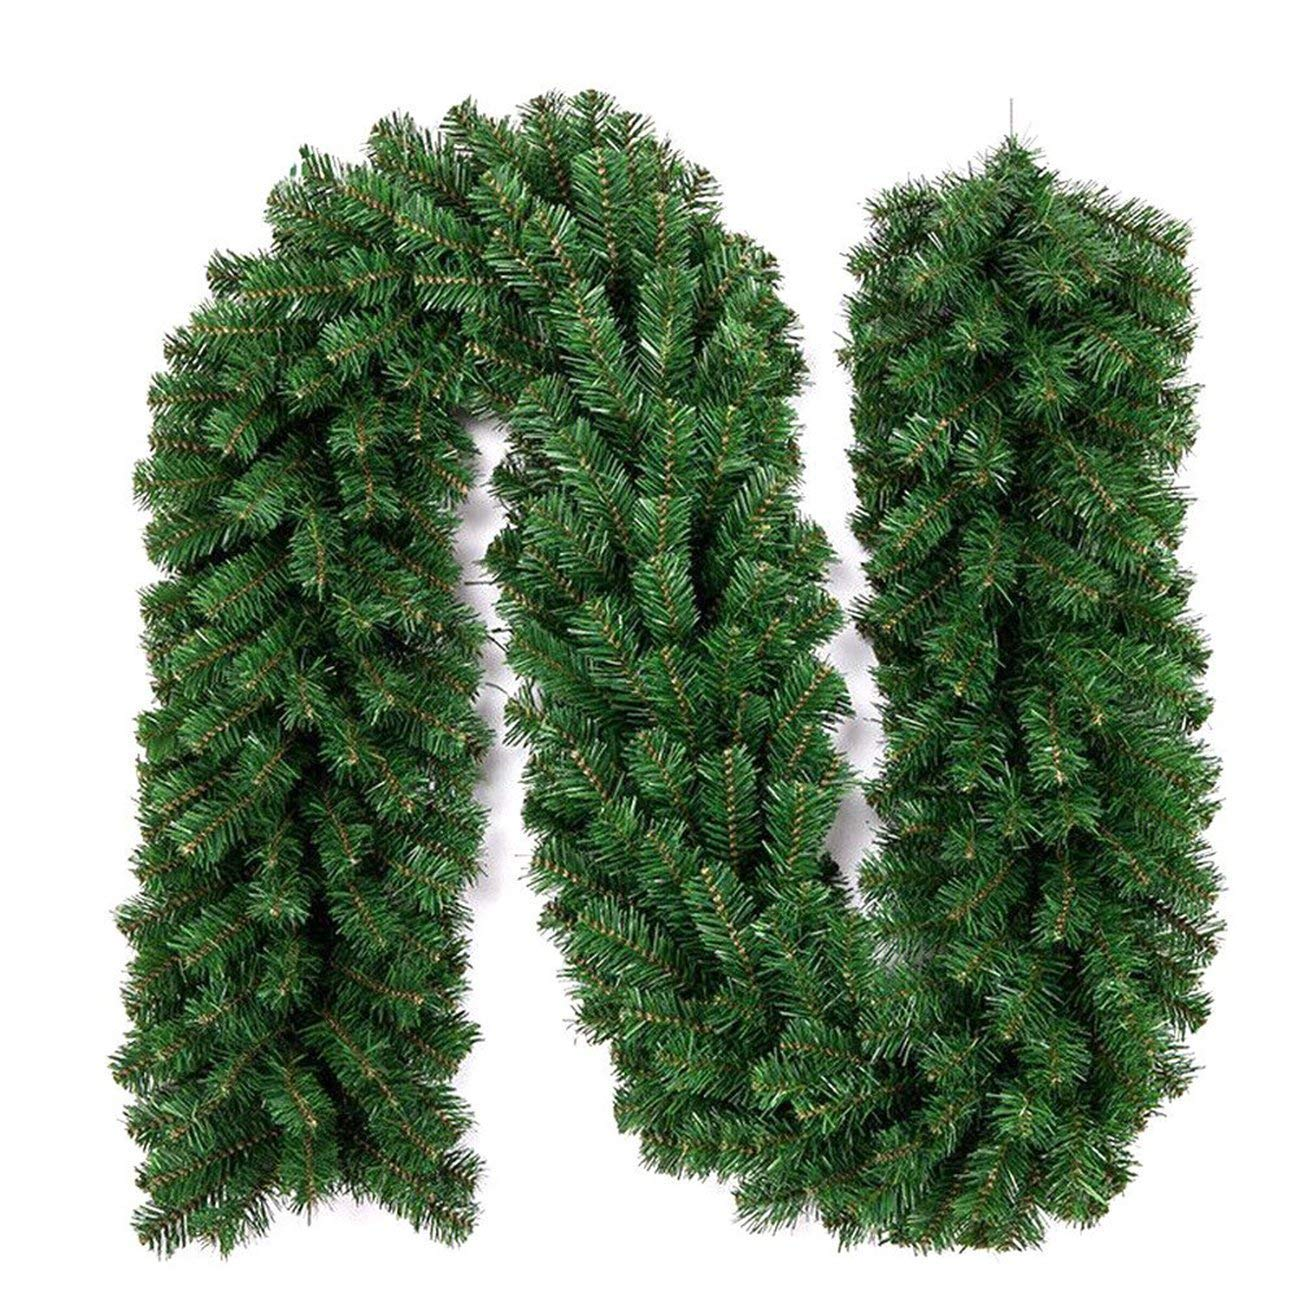 Surfmalleu 2.7M Guirnalda de Navidad Artificial del PVC Corona Decoración Navideña para Puerta Pared Chimenea Verde Larga Christmas Decoracion: Amazon.es: ...